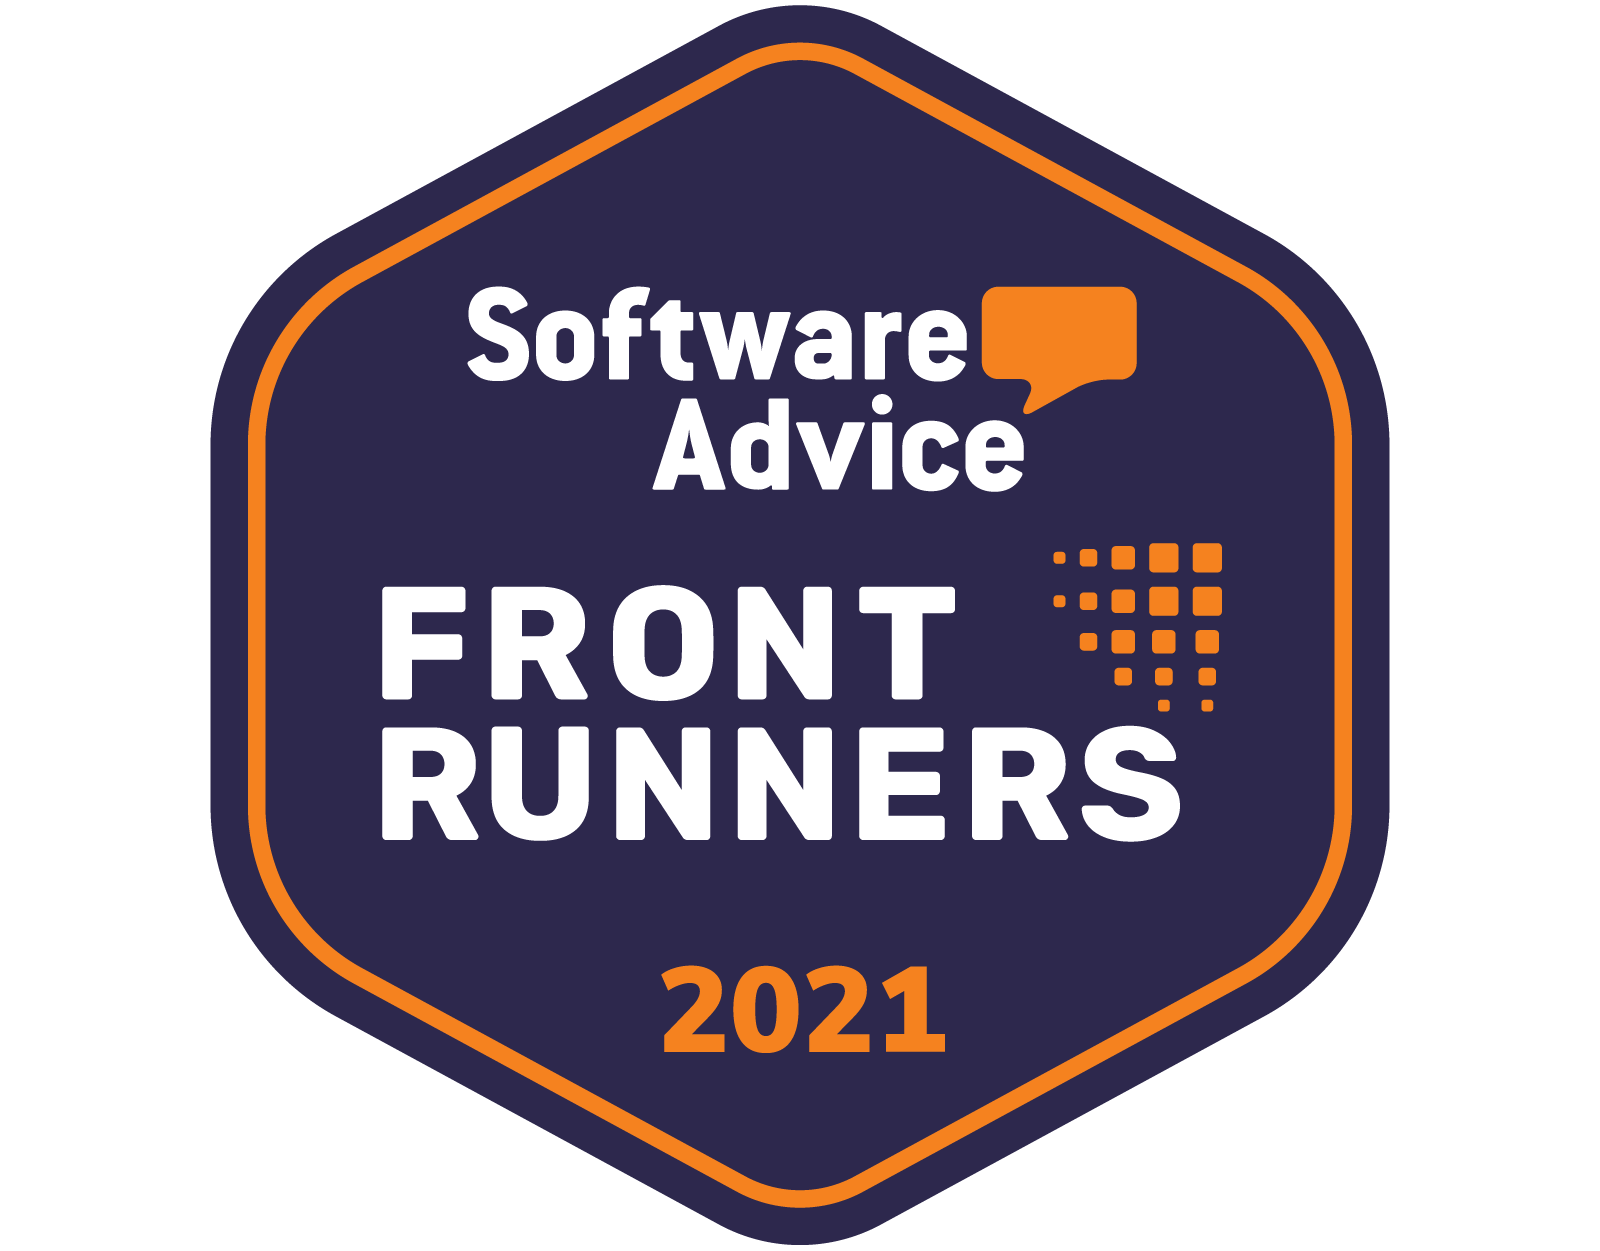 Software Advice Frontrunners for Vacation Rental Mar-21